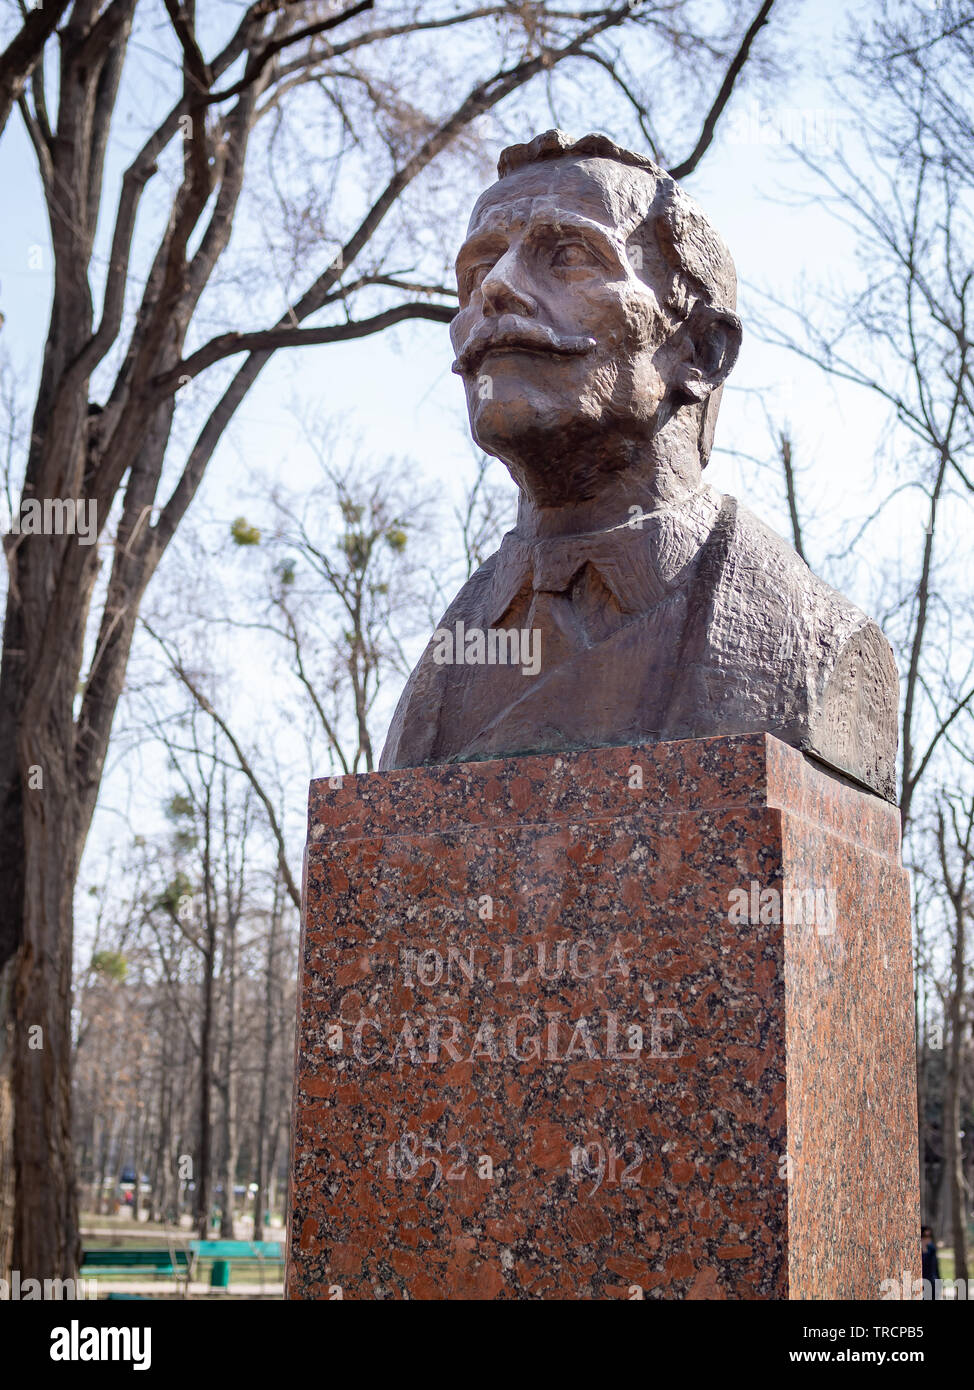 CHISINAU, MOLDOVA-MARCH 21, 2019: Ion Luca Caragiale bust in the Alley of Classics - Stock Image